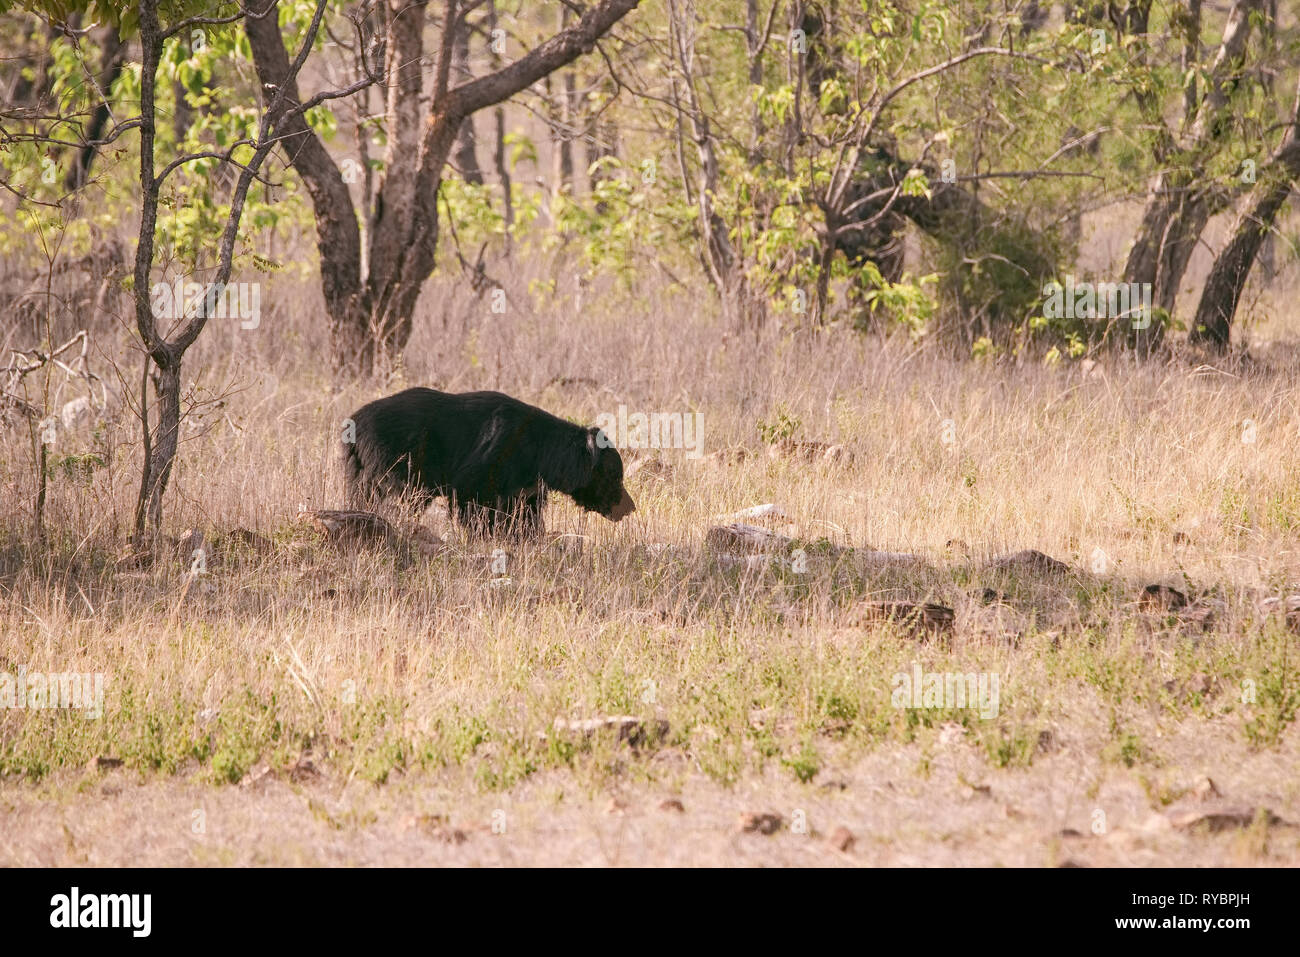 Himalayan,black bear,passing throughhilly ,dry ,tracts,of ,Tadoba National park,in search of ants,insects,from,ant mounds,nose,mouth,smeared with dust - Stock Image